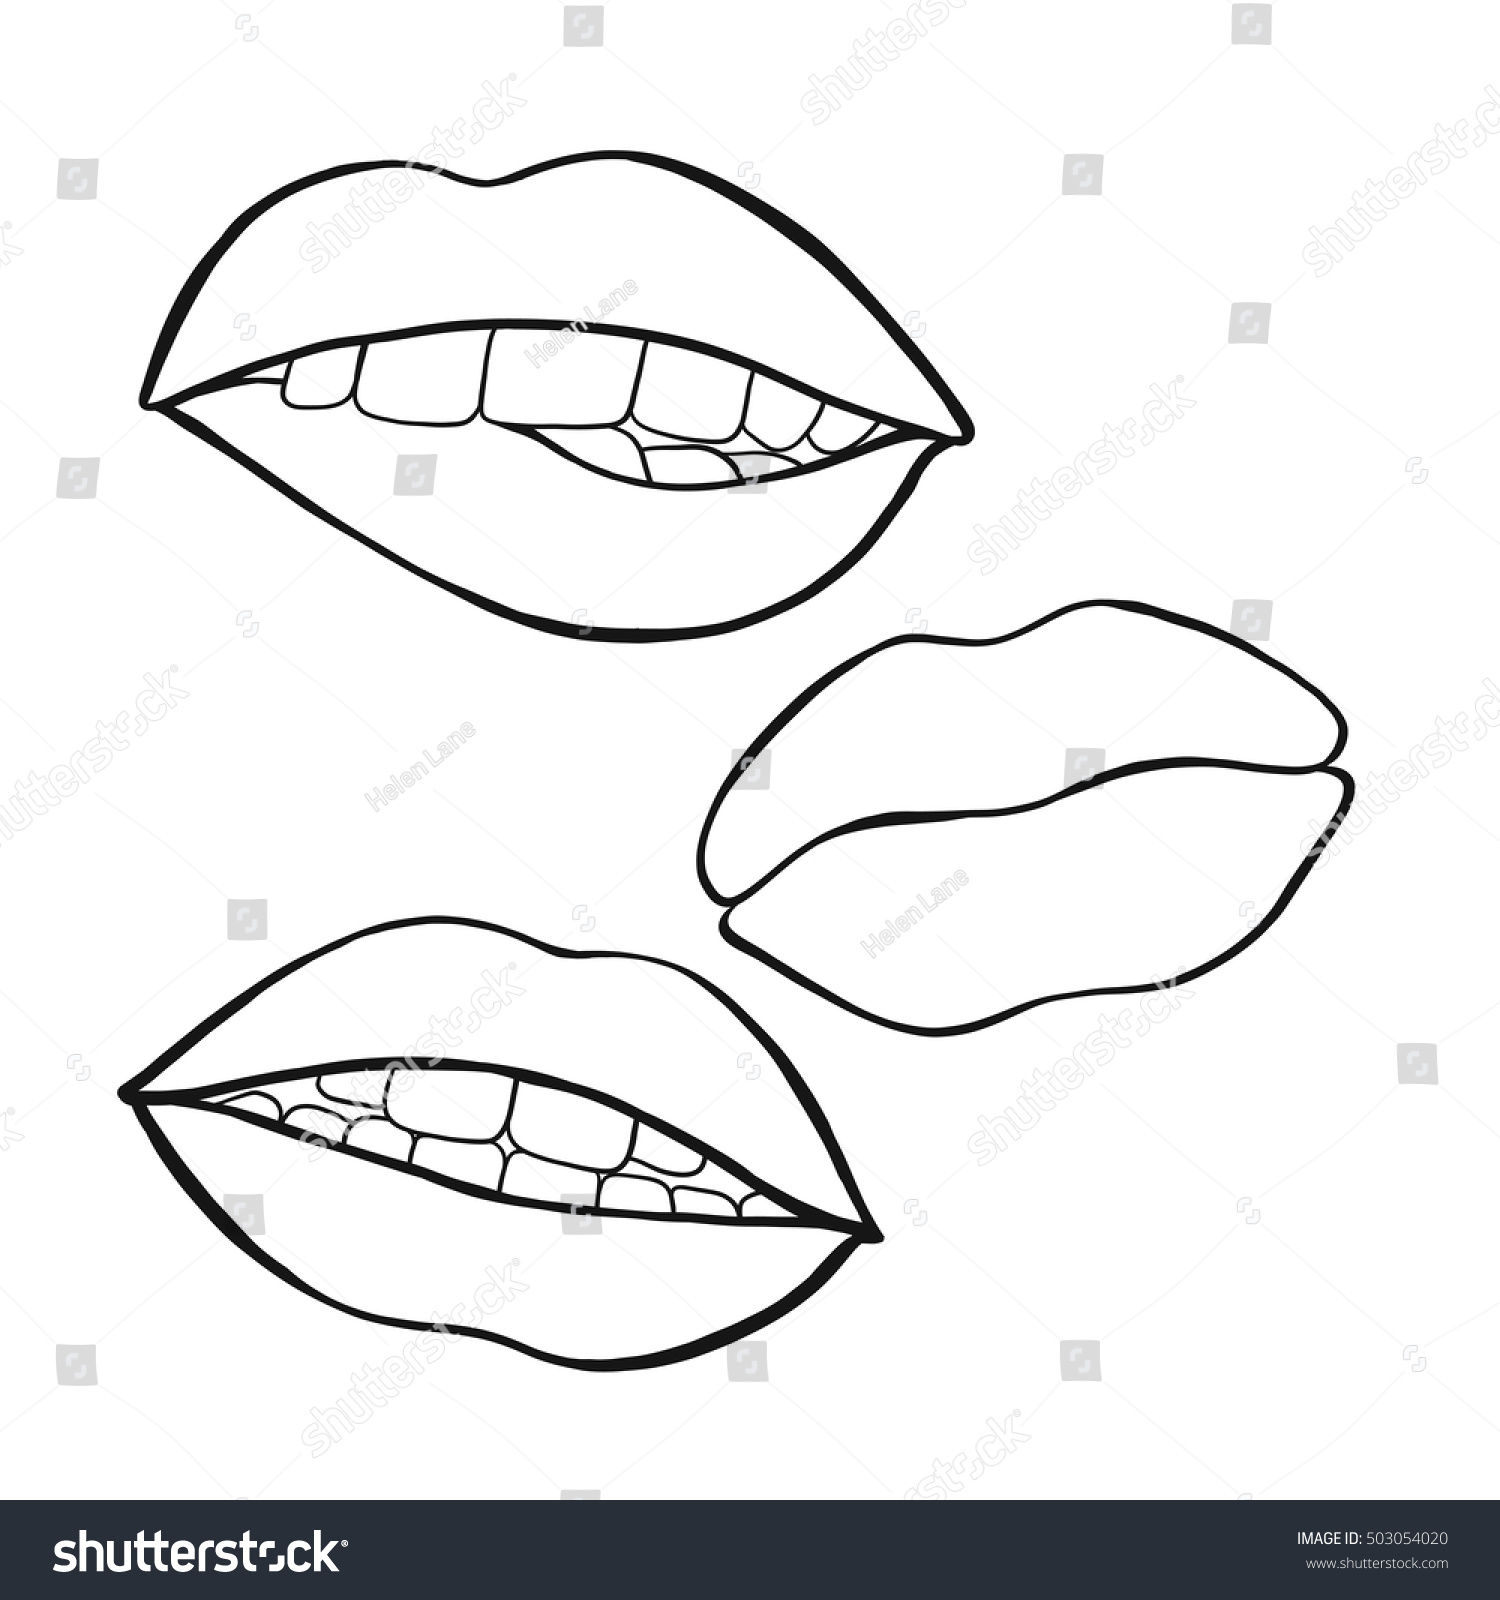 This is a photo of Exhilarating Lips Outline Drawing